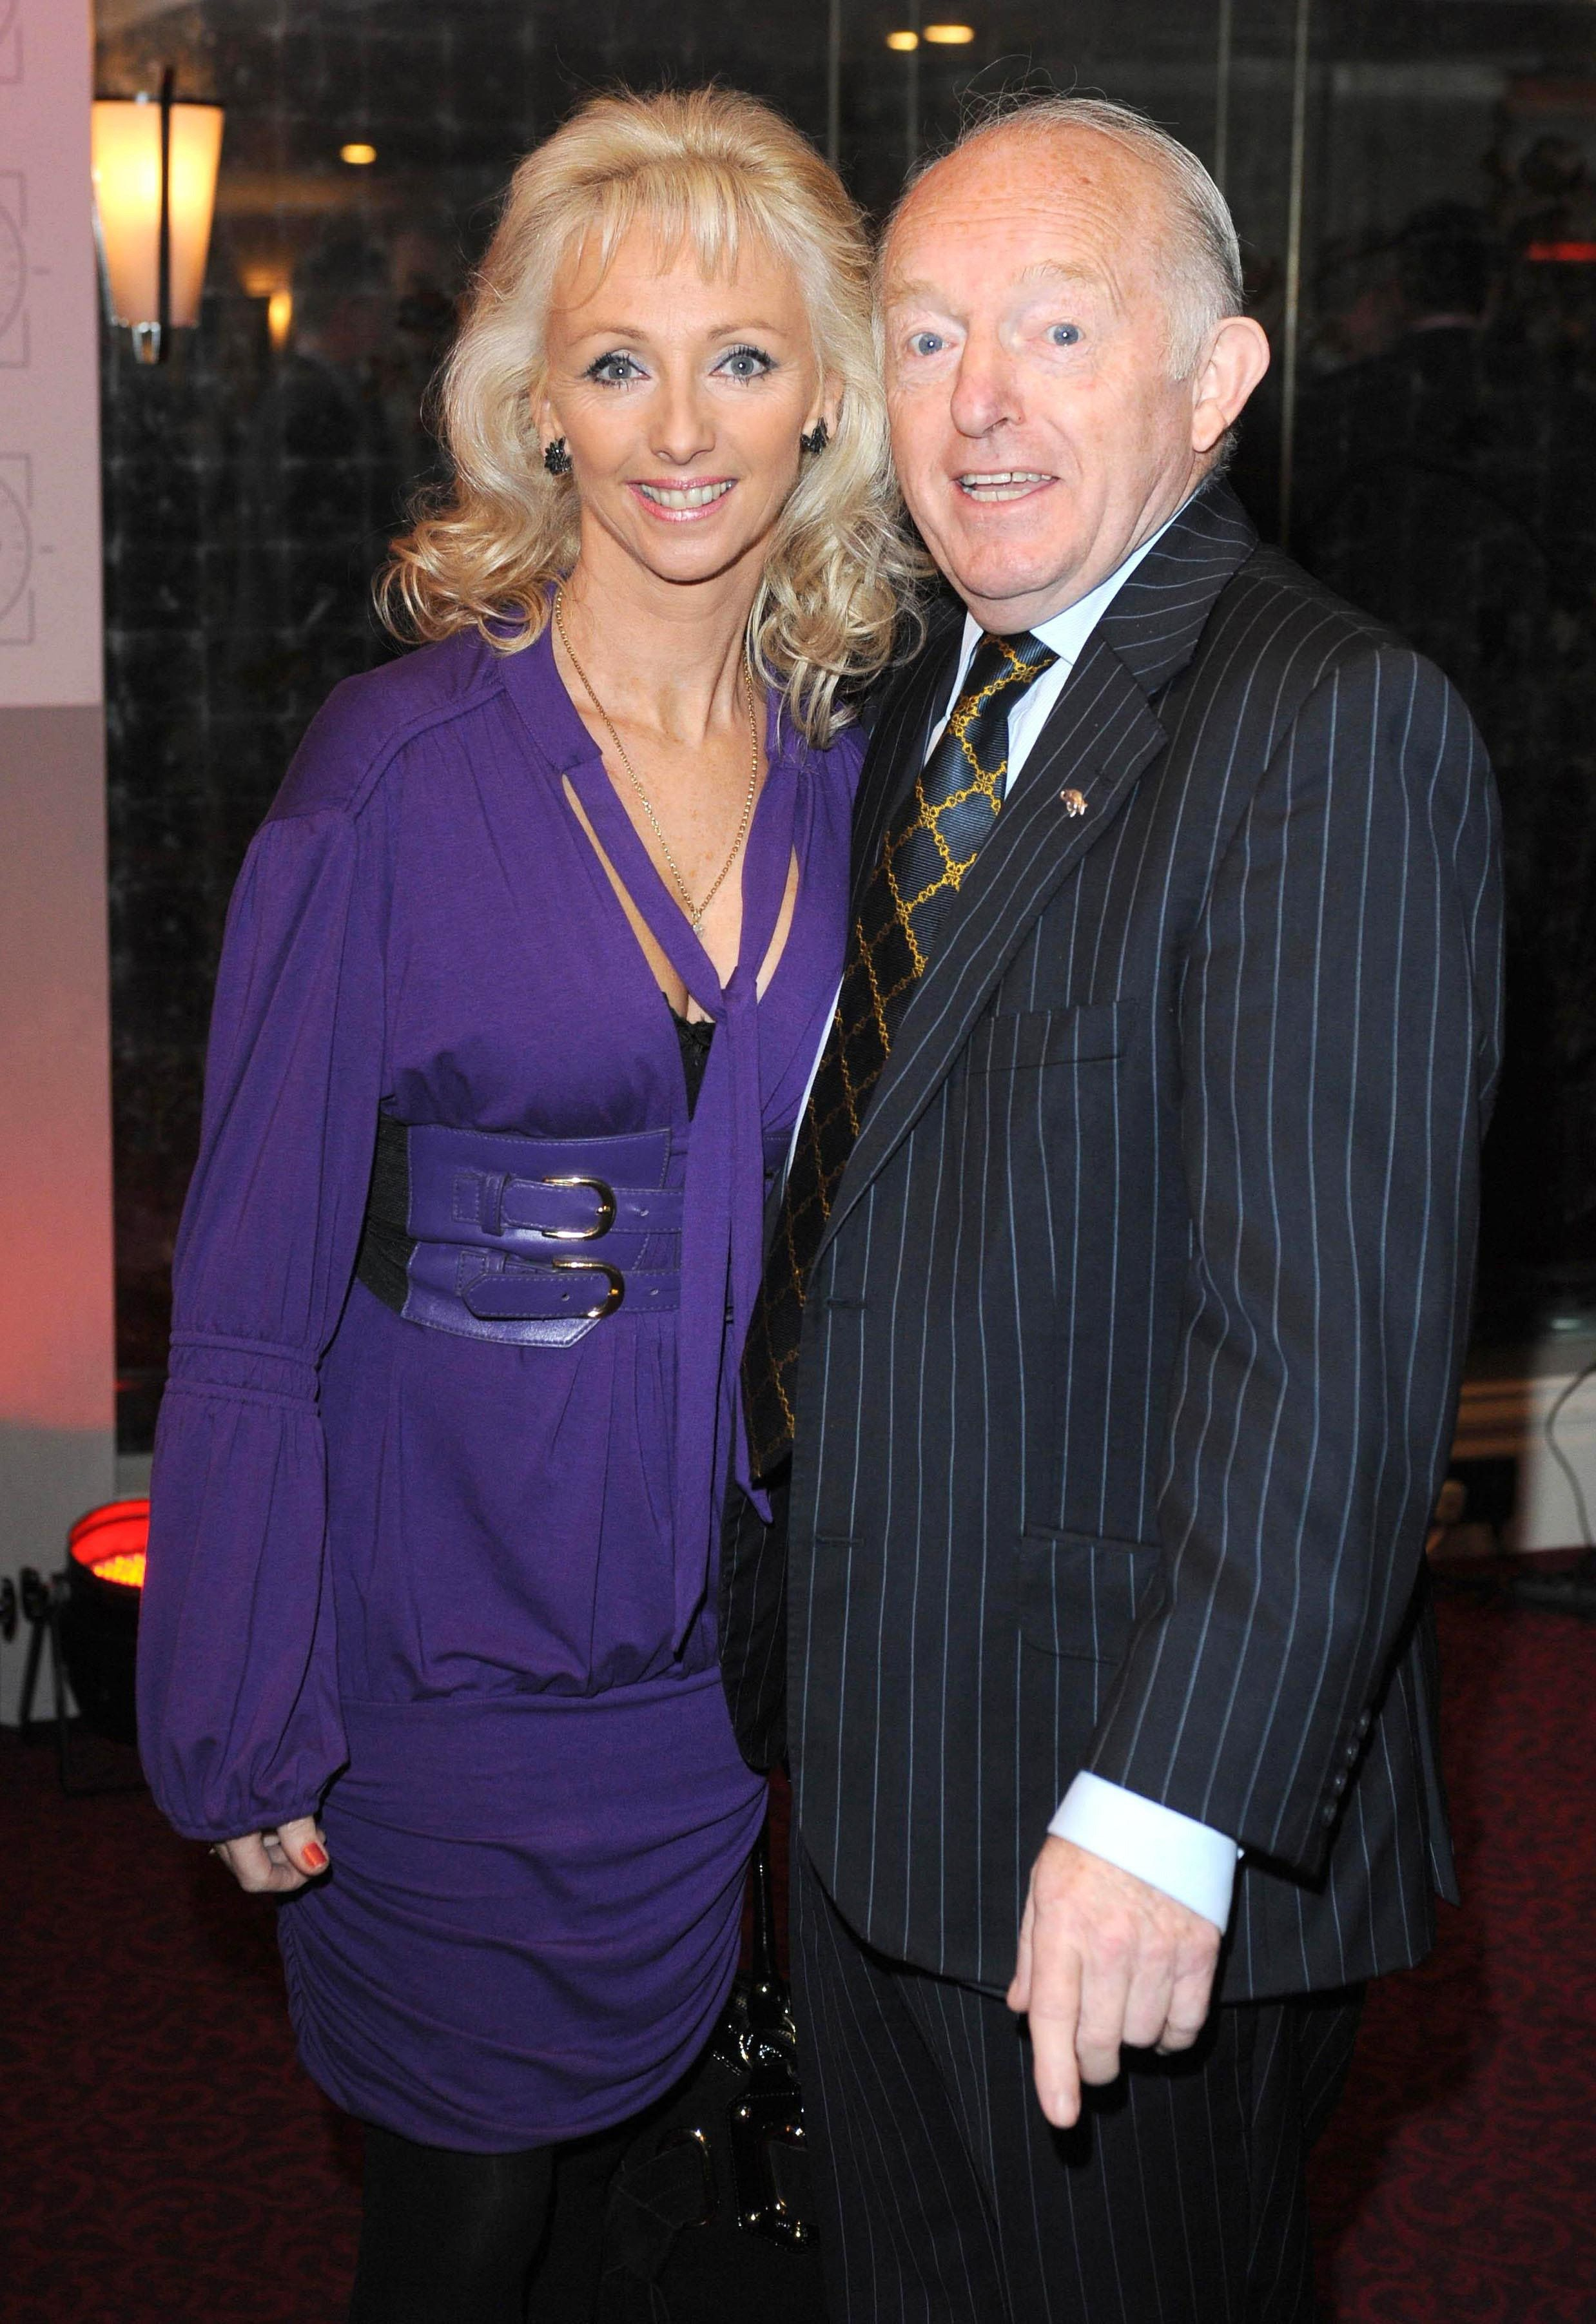 Debbie McGee Reveals What Late Husband Paul Daniels Would Have Made Of Her 'Strictly Come Dancing' Stint